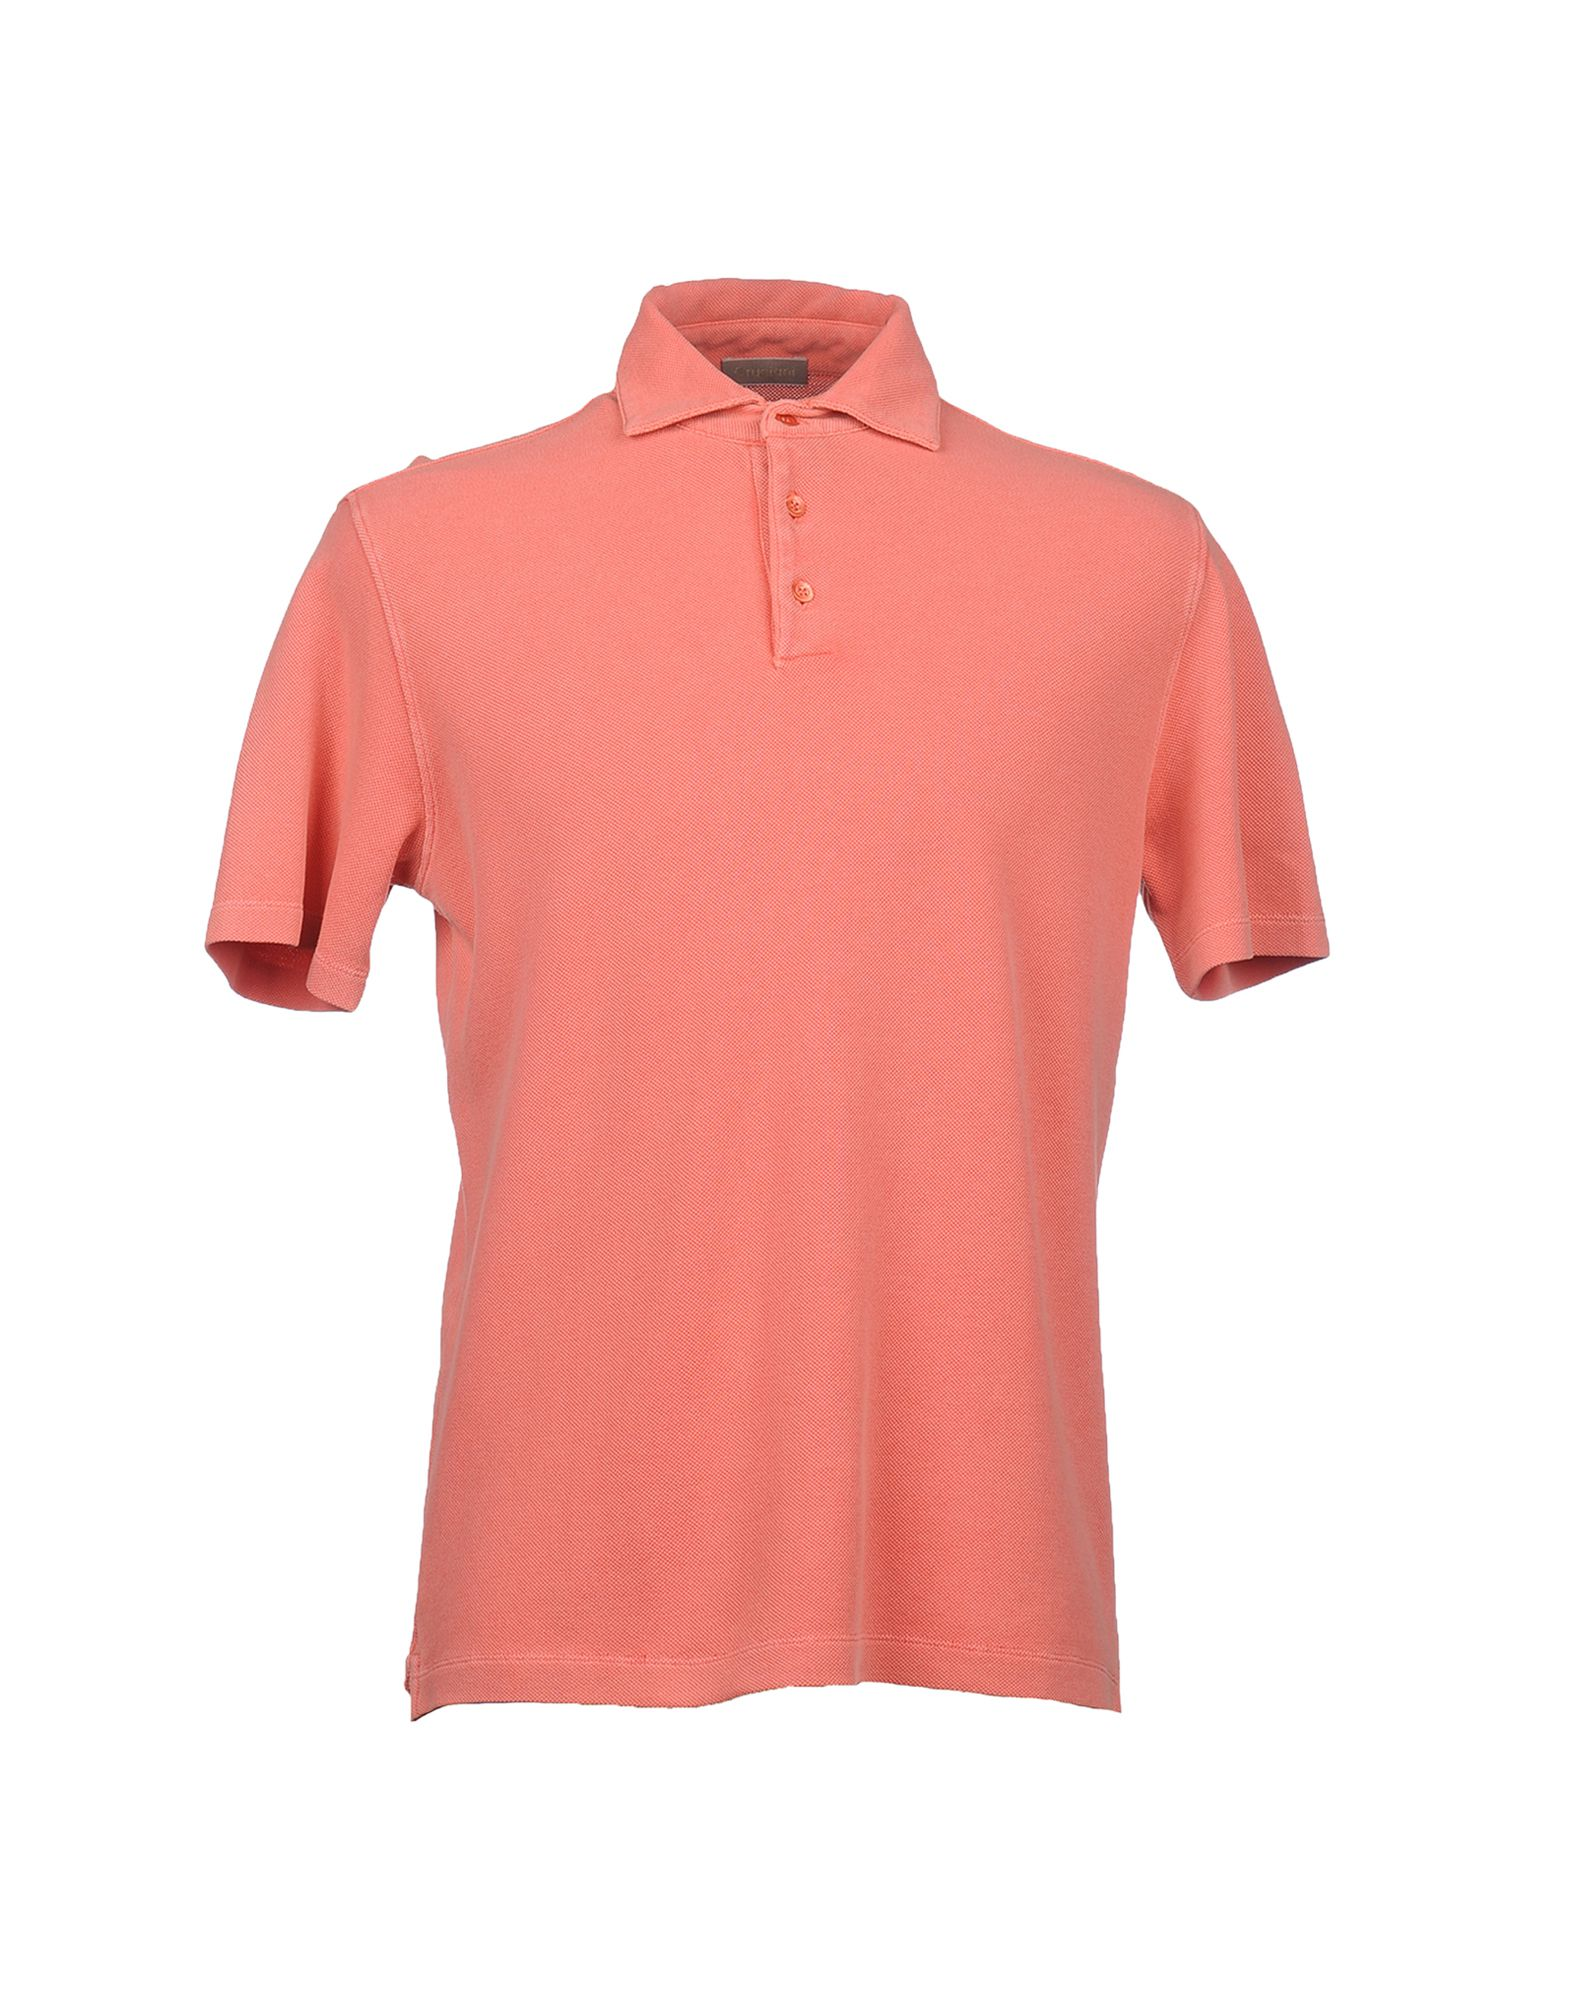 Cruciani Polo Shirt In Pink For Men Salmon Pink Lyst